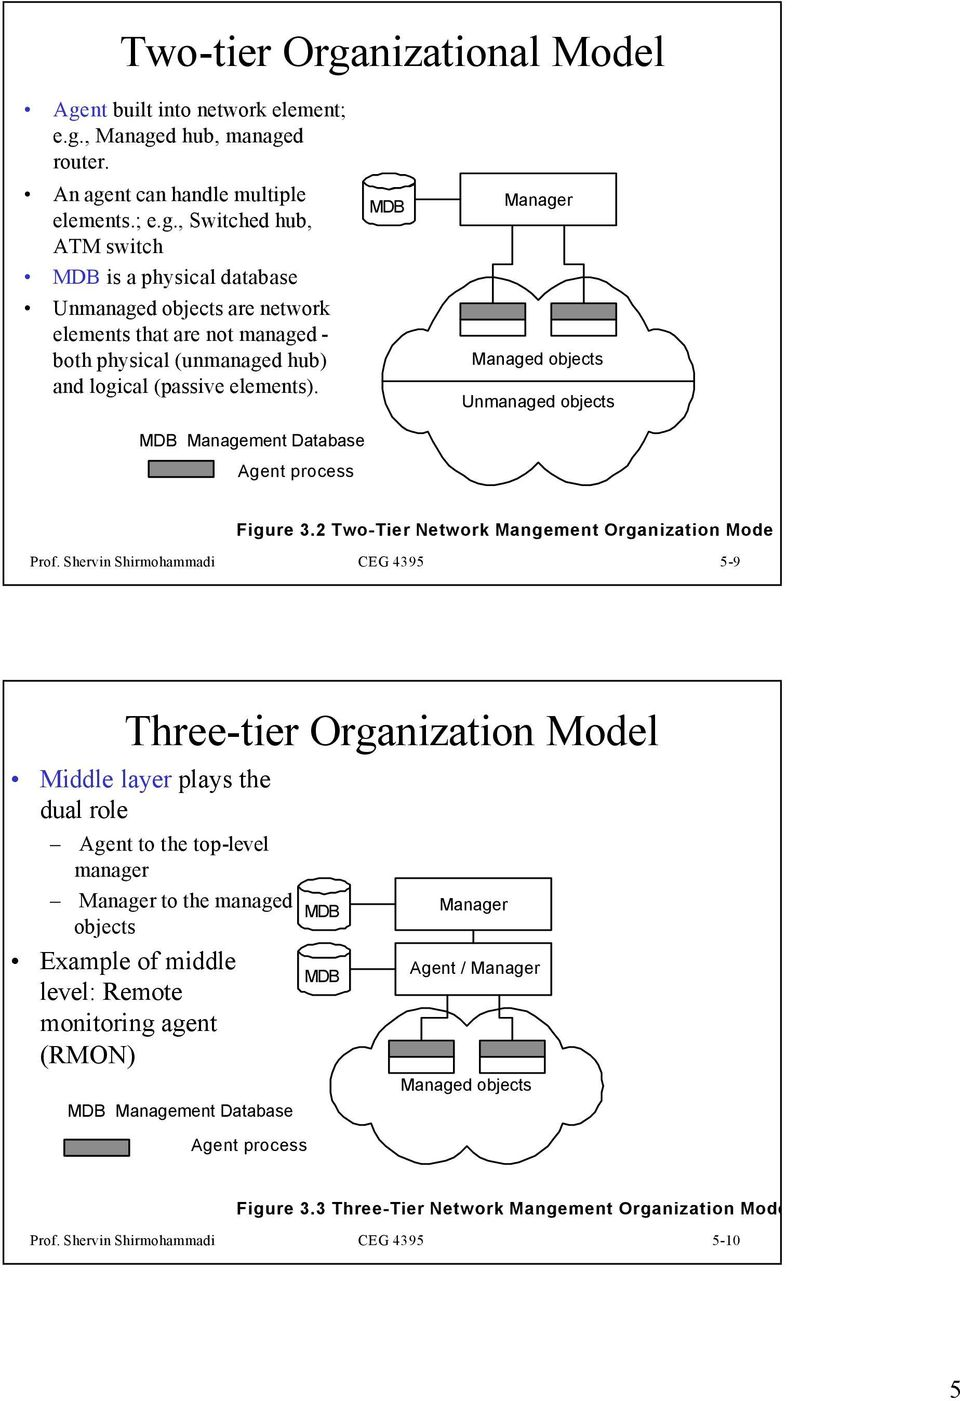 Shervin Shirmohammadi CEG 4395 5-9 Three-tier Organization Model Middle layer plays the dual role Agent to the top-level manager to the managed objects Example of middle level: Remote monitoring